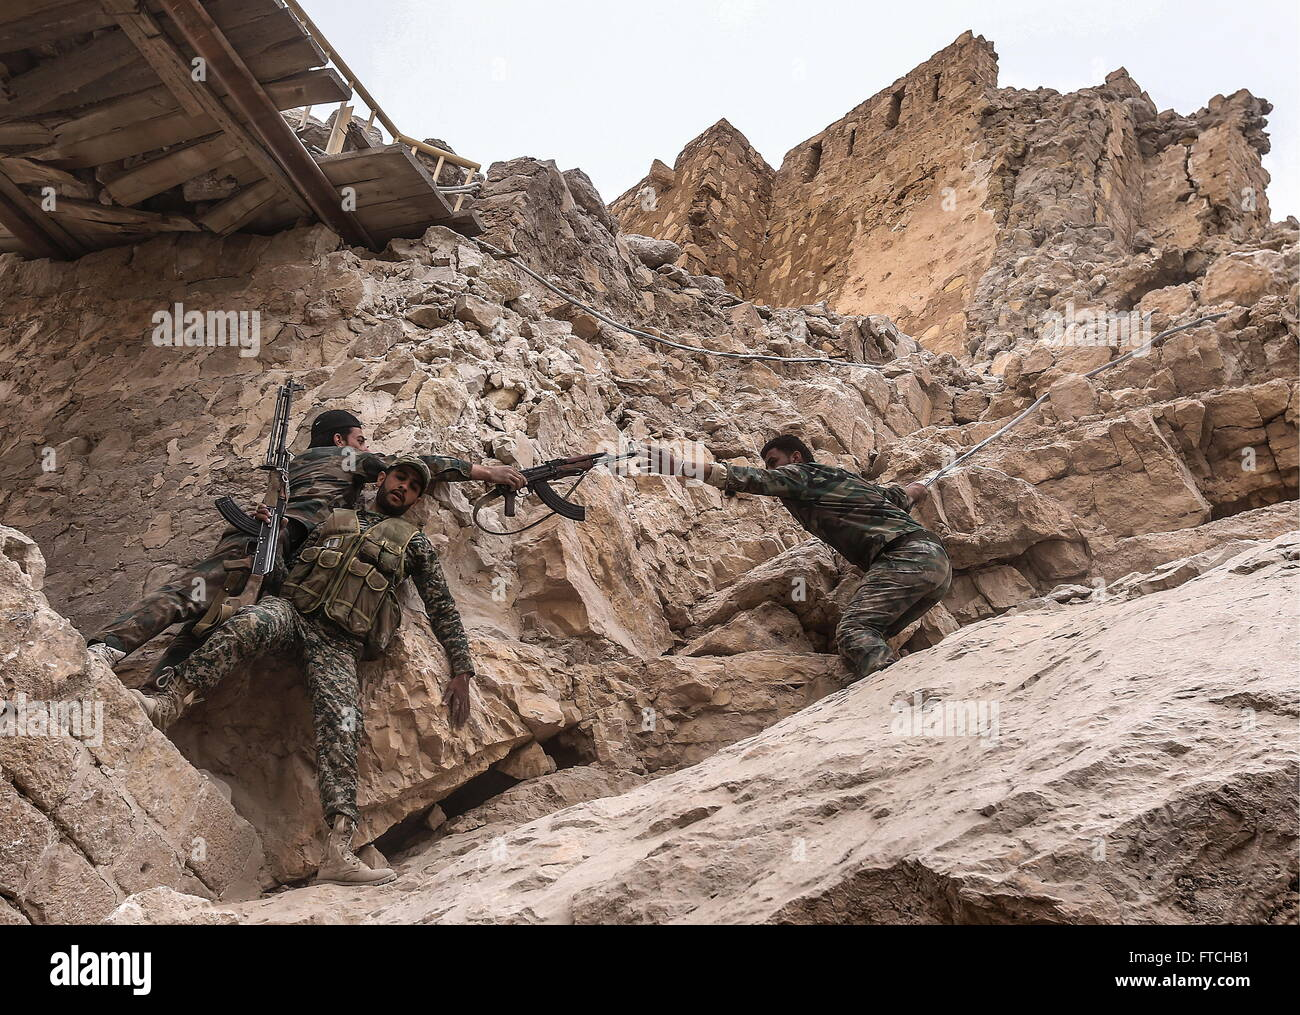 Palmyria, Syria. 26th Mar, 2016. Syrian government army soldiers on their way to the top of Fakhr al-Din al-Maani - Stock Image